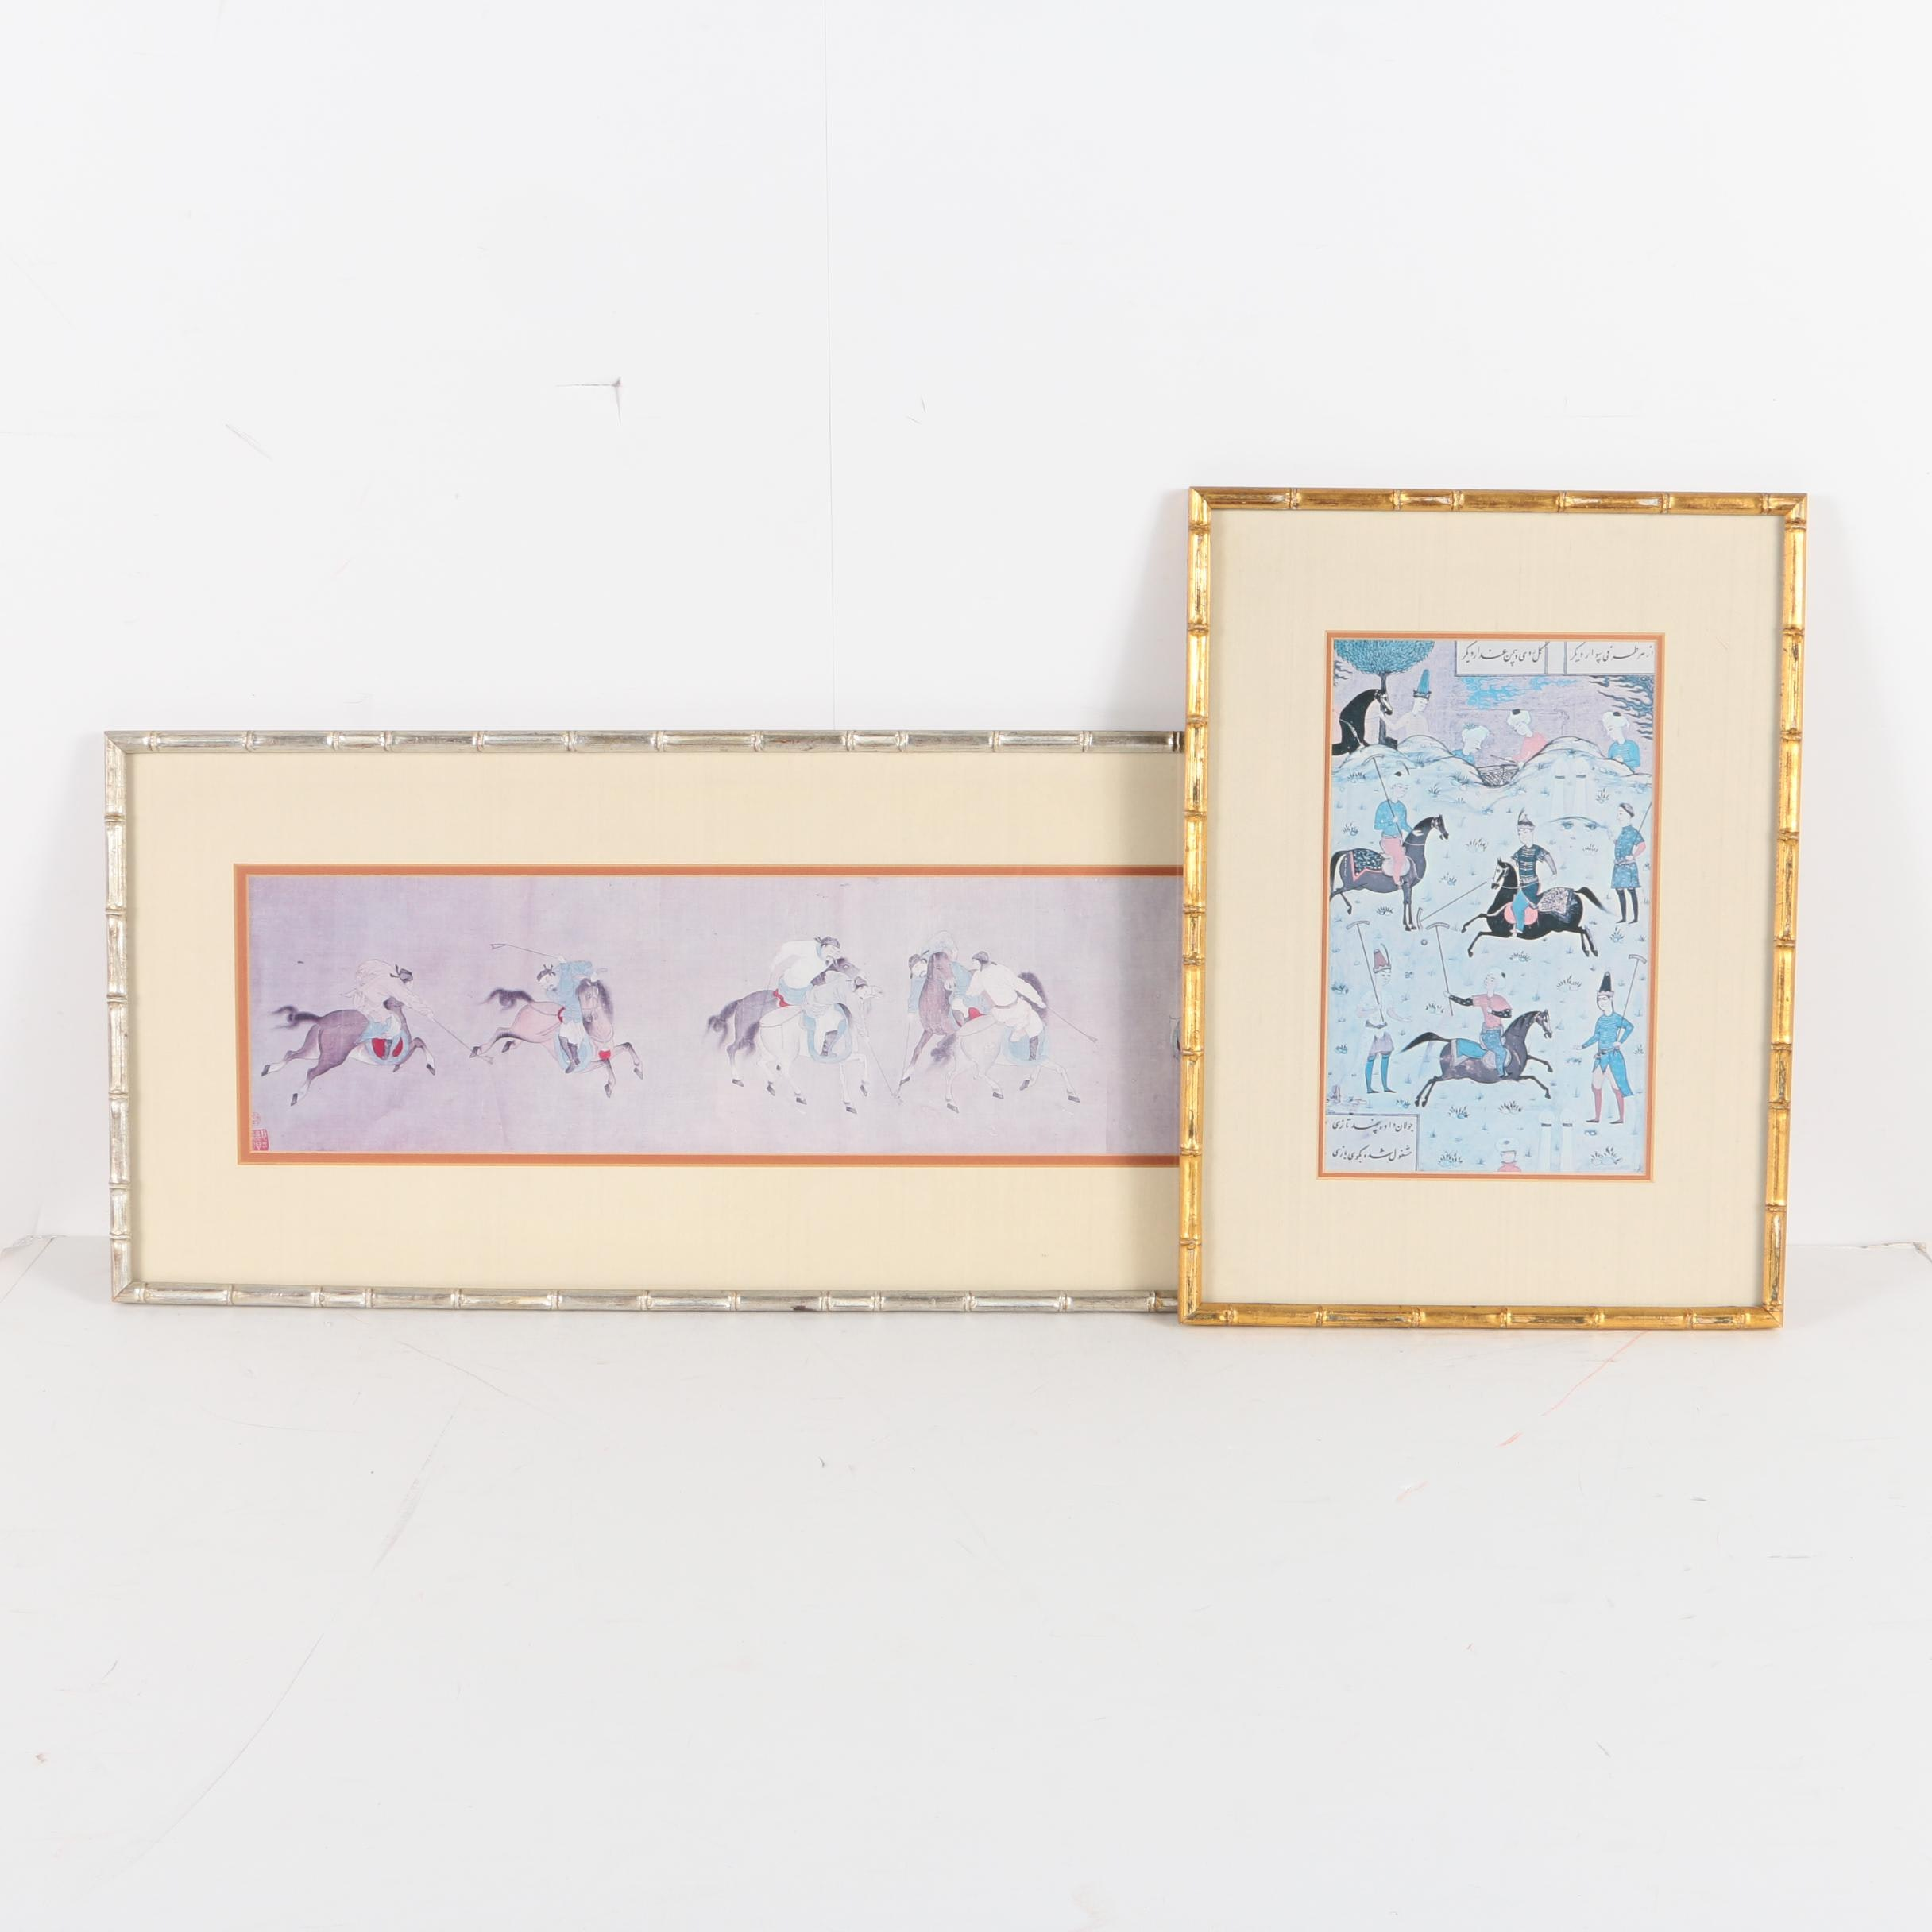 East Asian and Indo-Persian Reproduction Prints of Polo Matches